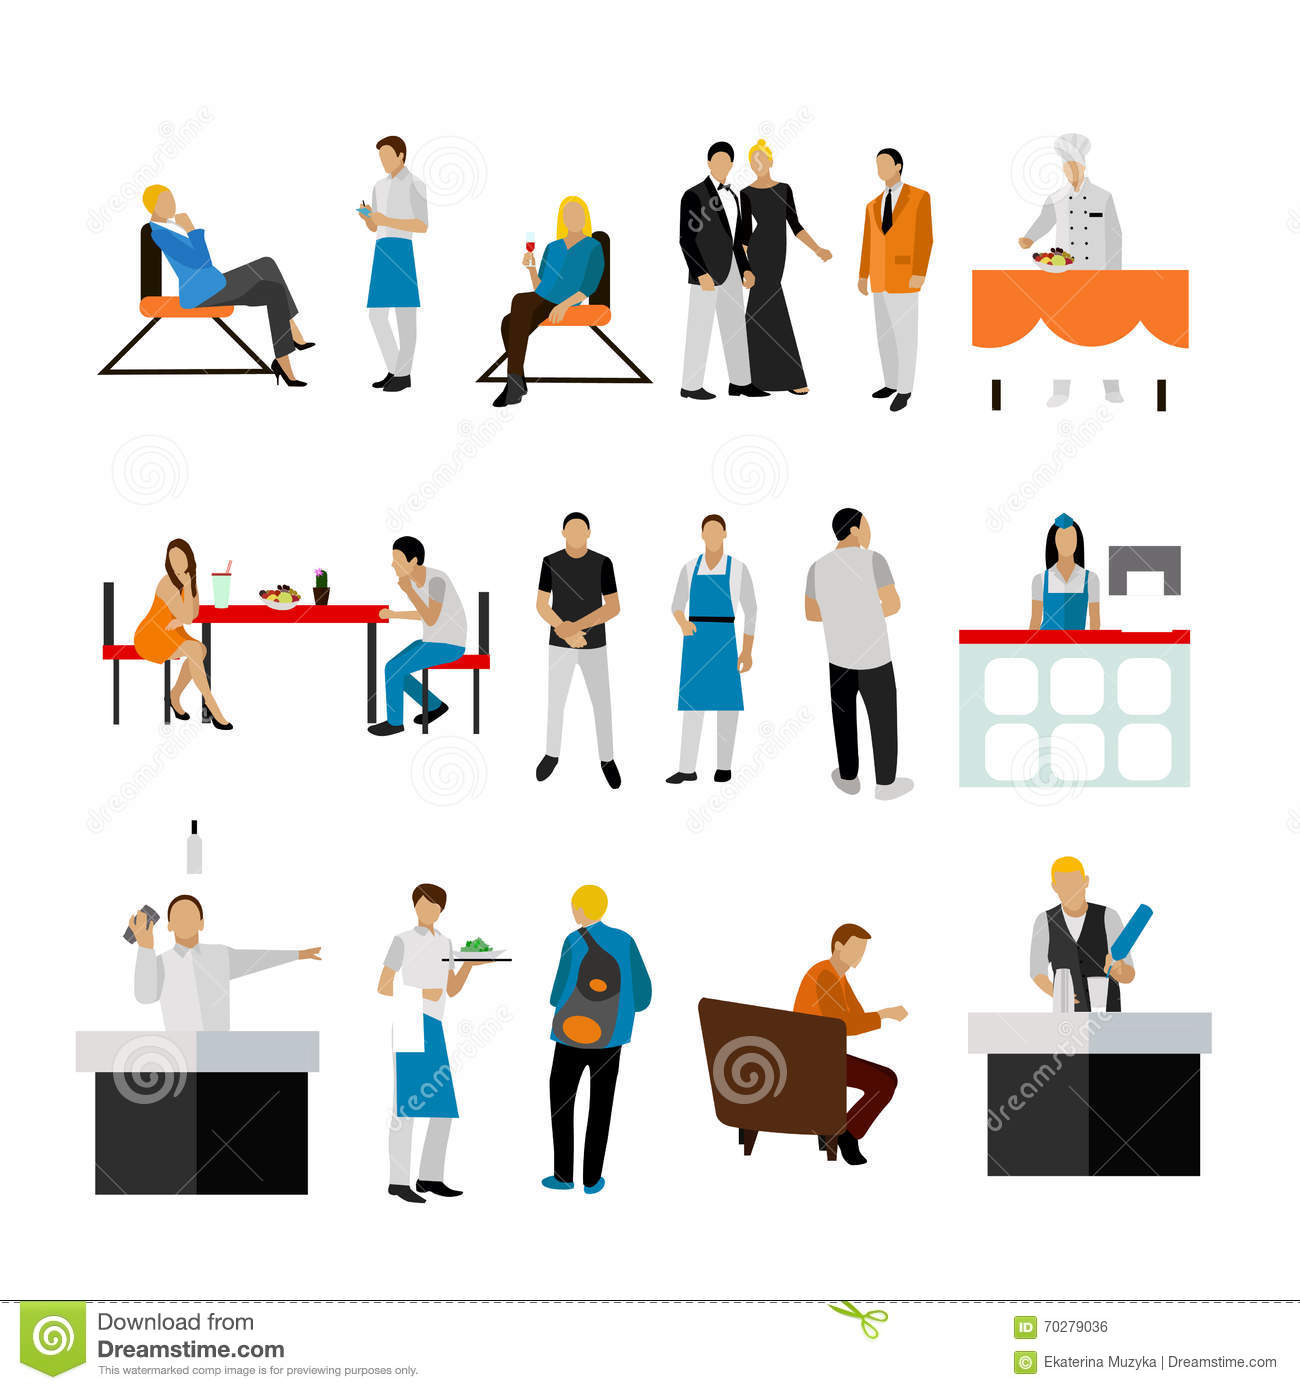 Restaurant Background With People vector set of restaurant employees and visitors. people icons on